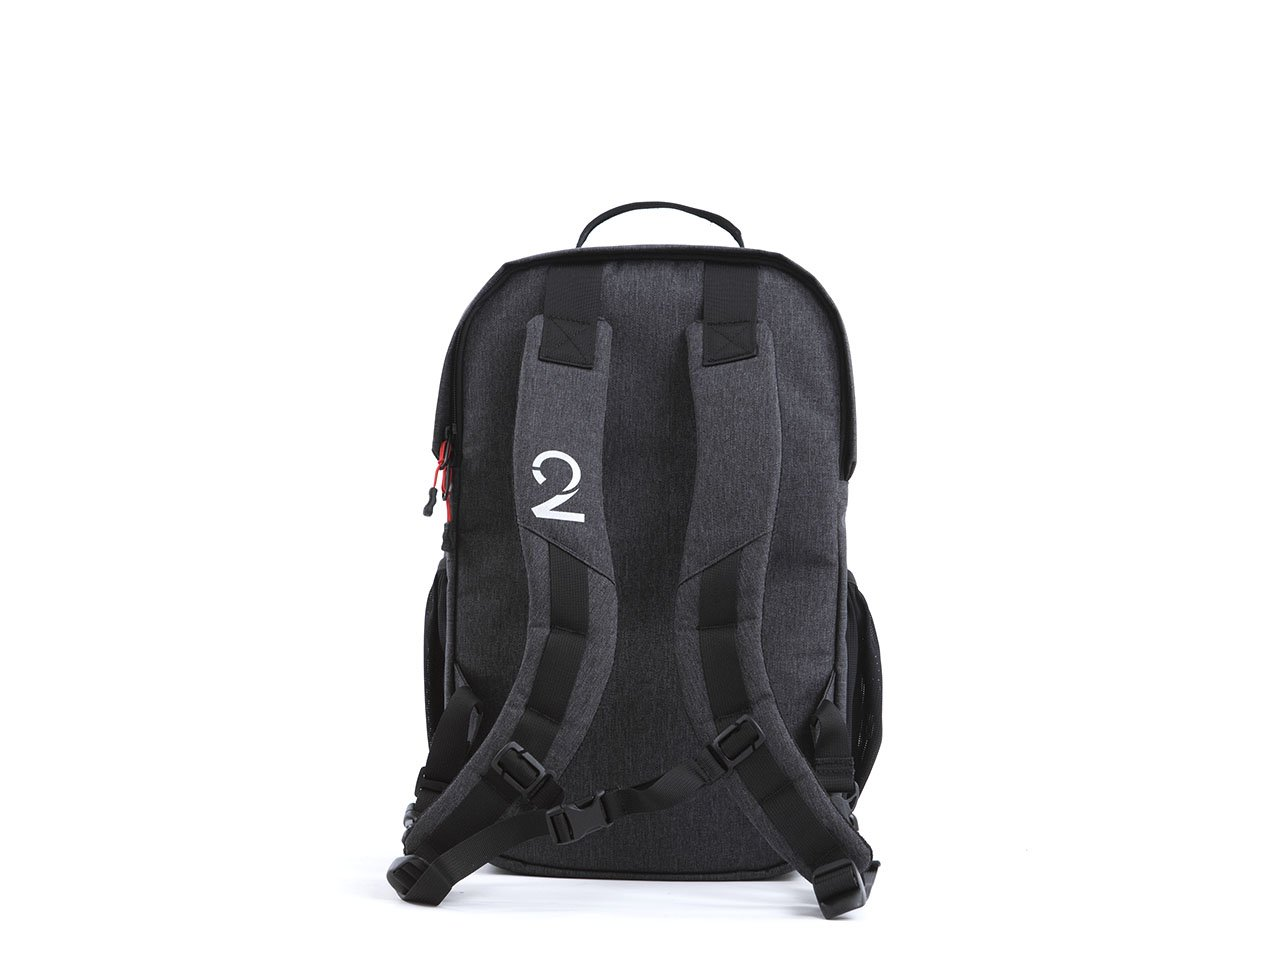 Backpack_Graphite_Straps_27e1c2b5-c340-484a-9096-bc07a68f9aa0